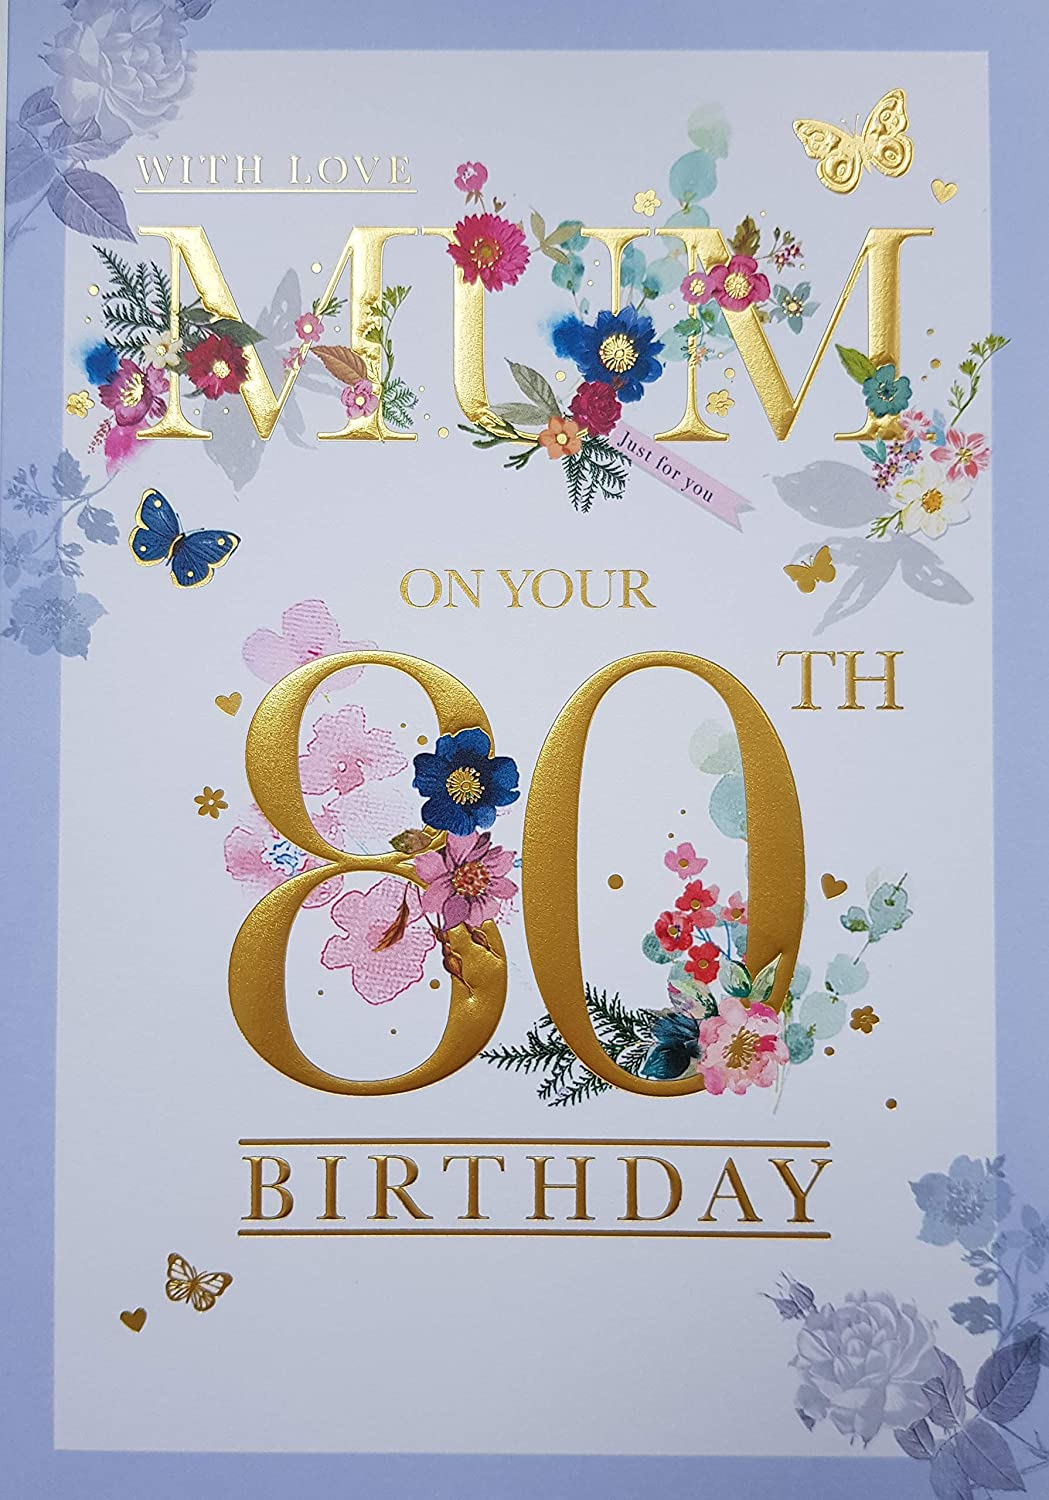 WITH LOVE MAMAN 80th 80 Fleurs /& Cup Cake Design Happy Birthday Card Lovely Verset